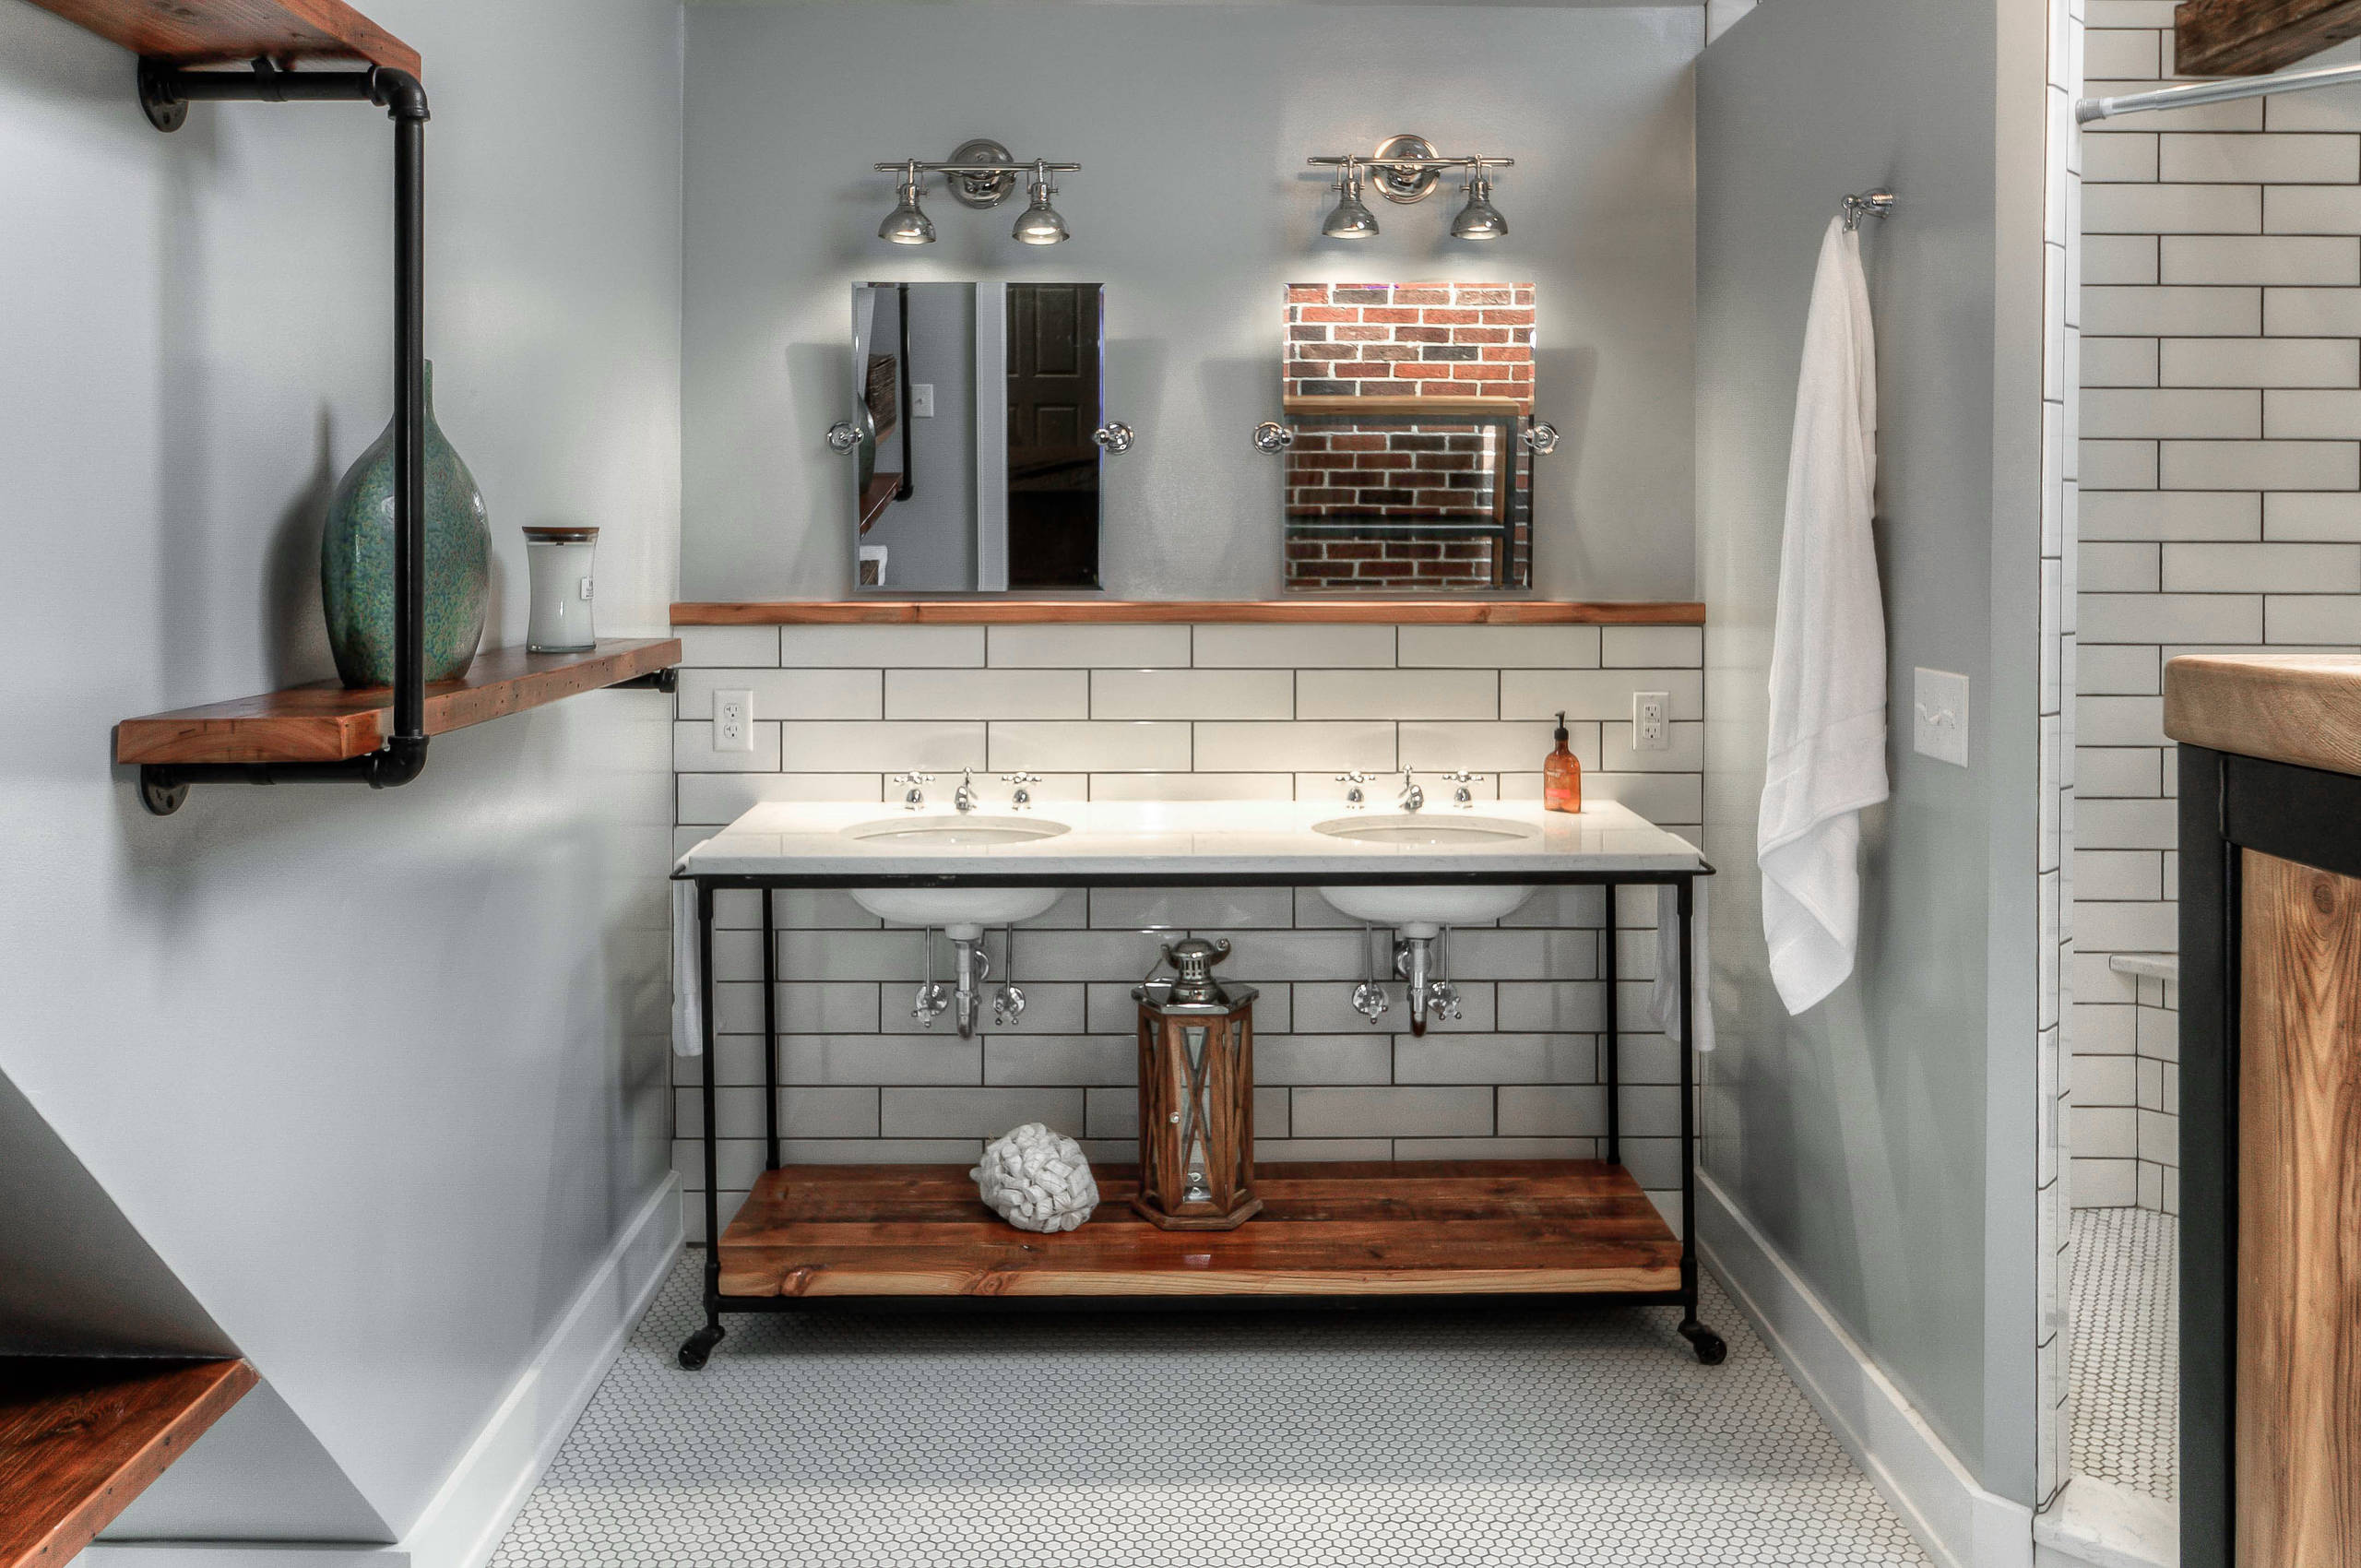 White Tiles Grey Grout Industrial Bathroom Attic Bath Barn Door Edison Bulb Exposed Brick